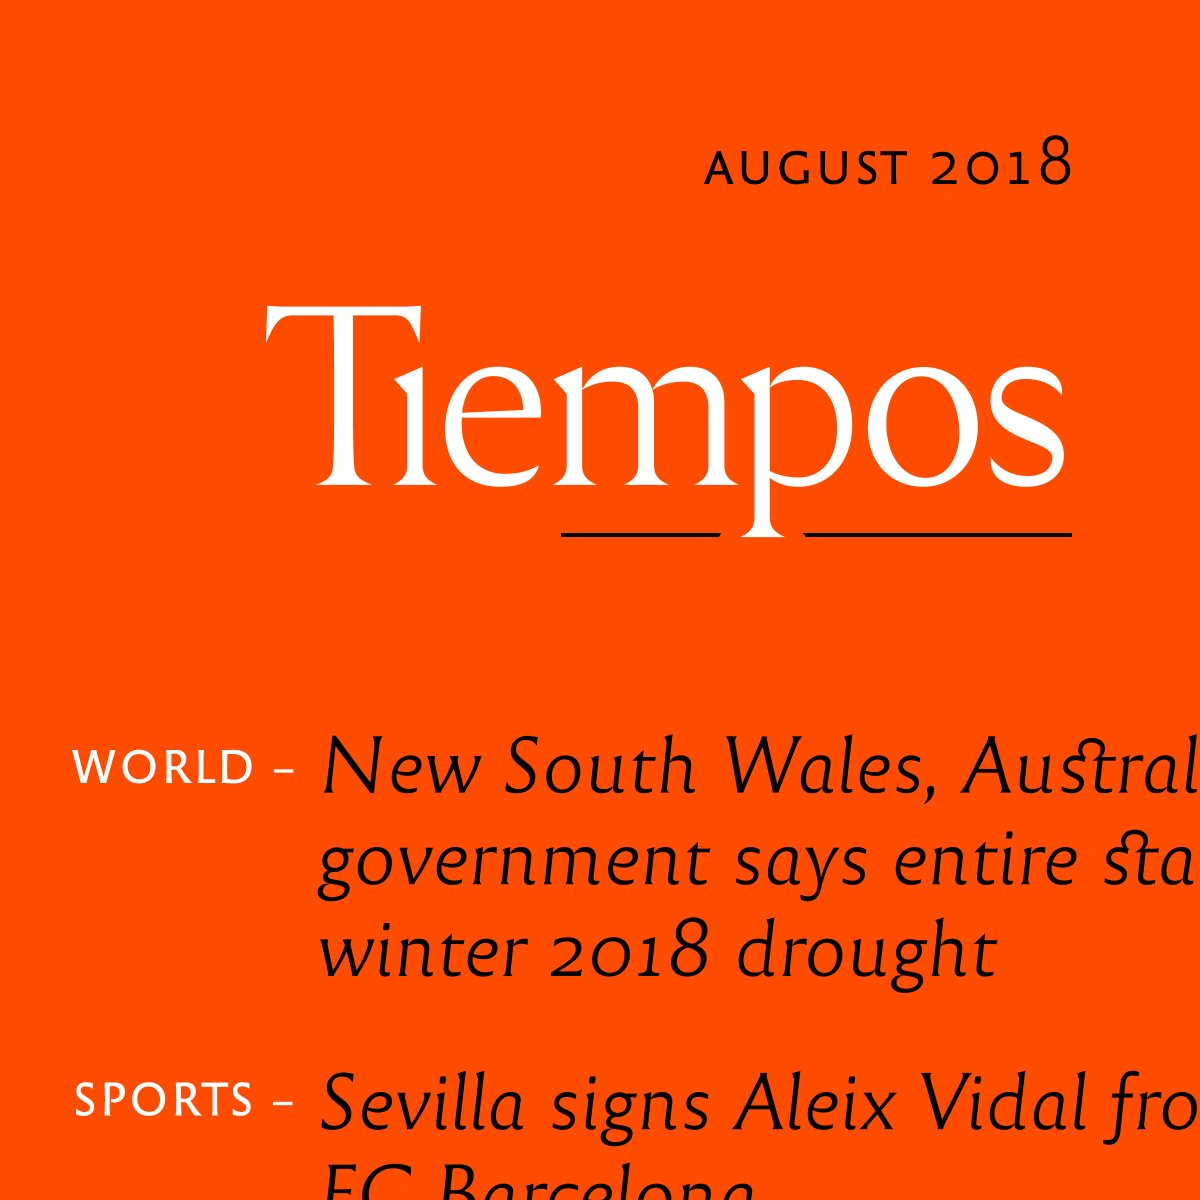 Serif: Reforma 1969, by Pampatype ( https:// buff.ly/2zeIfb1  &nbsp;  ) Sans-serif: Reforma 2018, by Pampatype Text from Wikinews #typography #freefont #news #graphicdesign #magazine #font<br>http://pic.twitter.com/FYx0FnFJwu